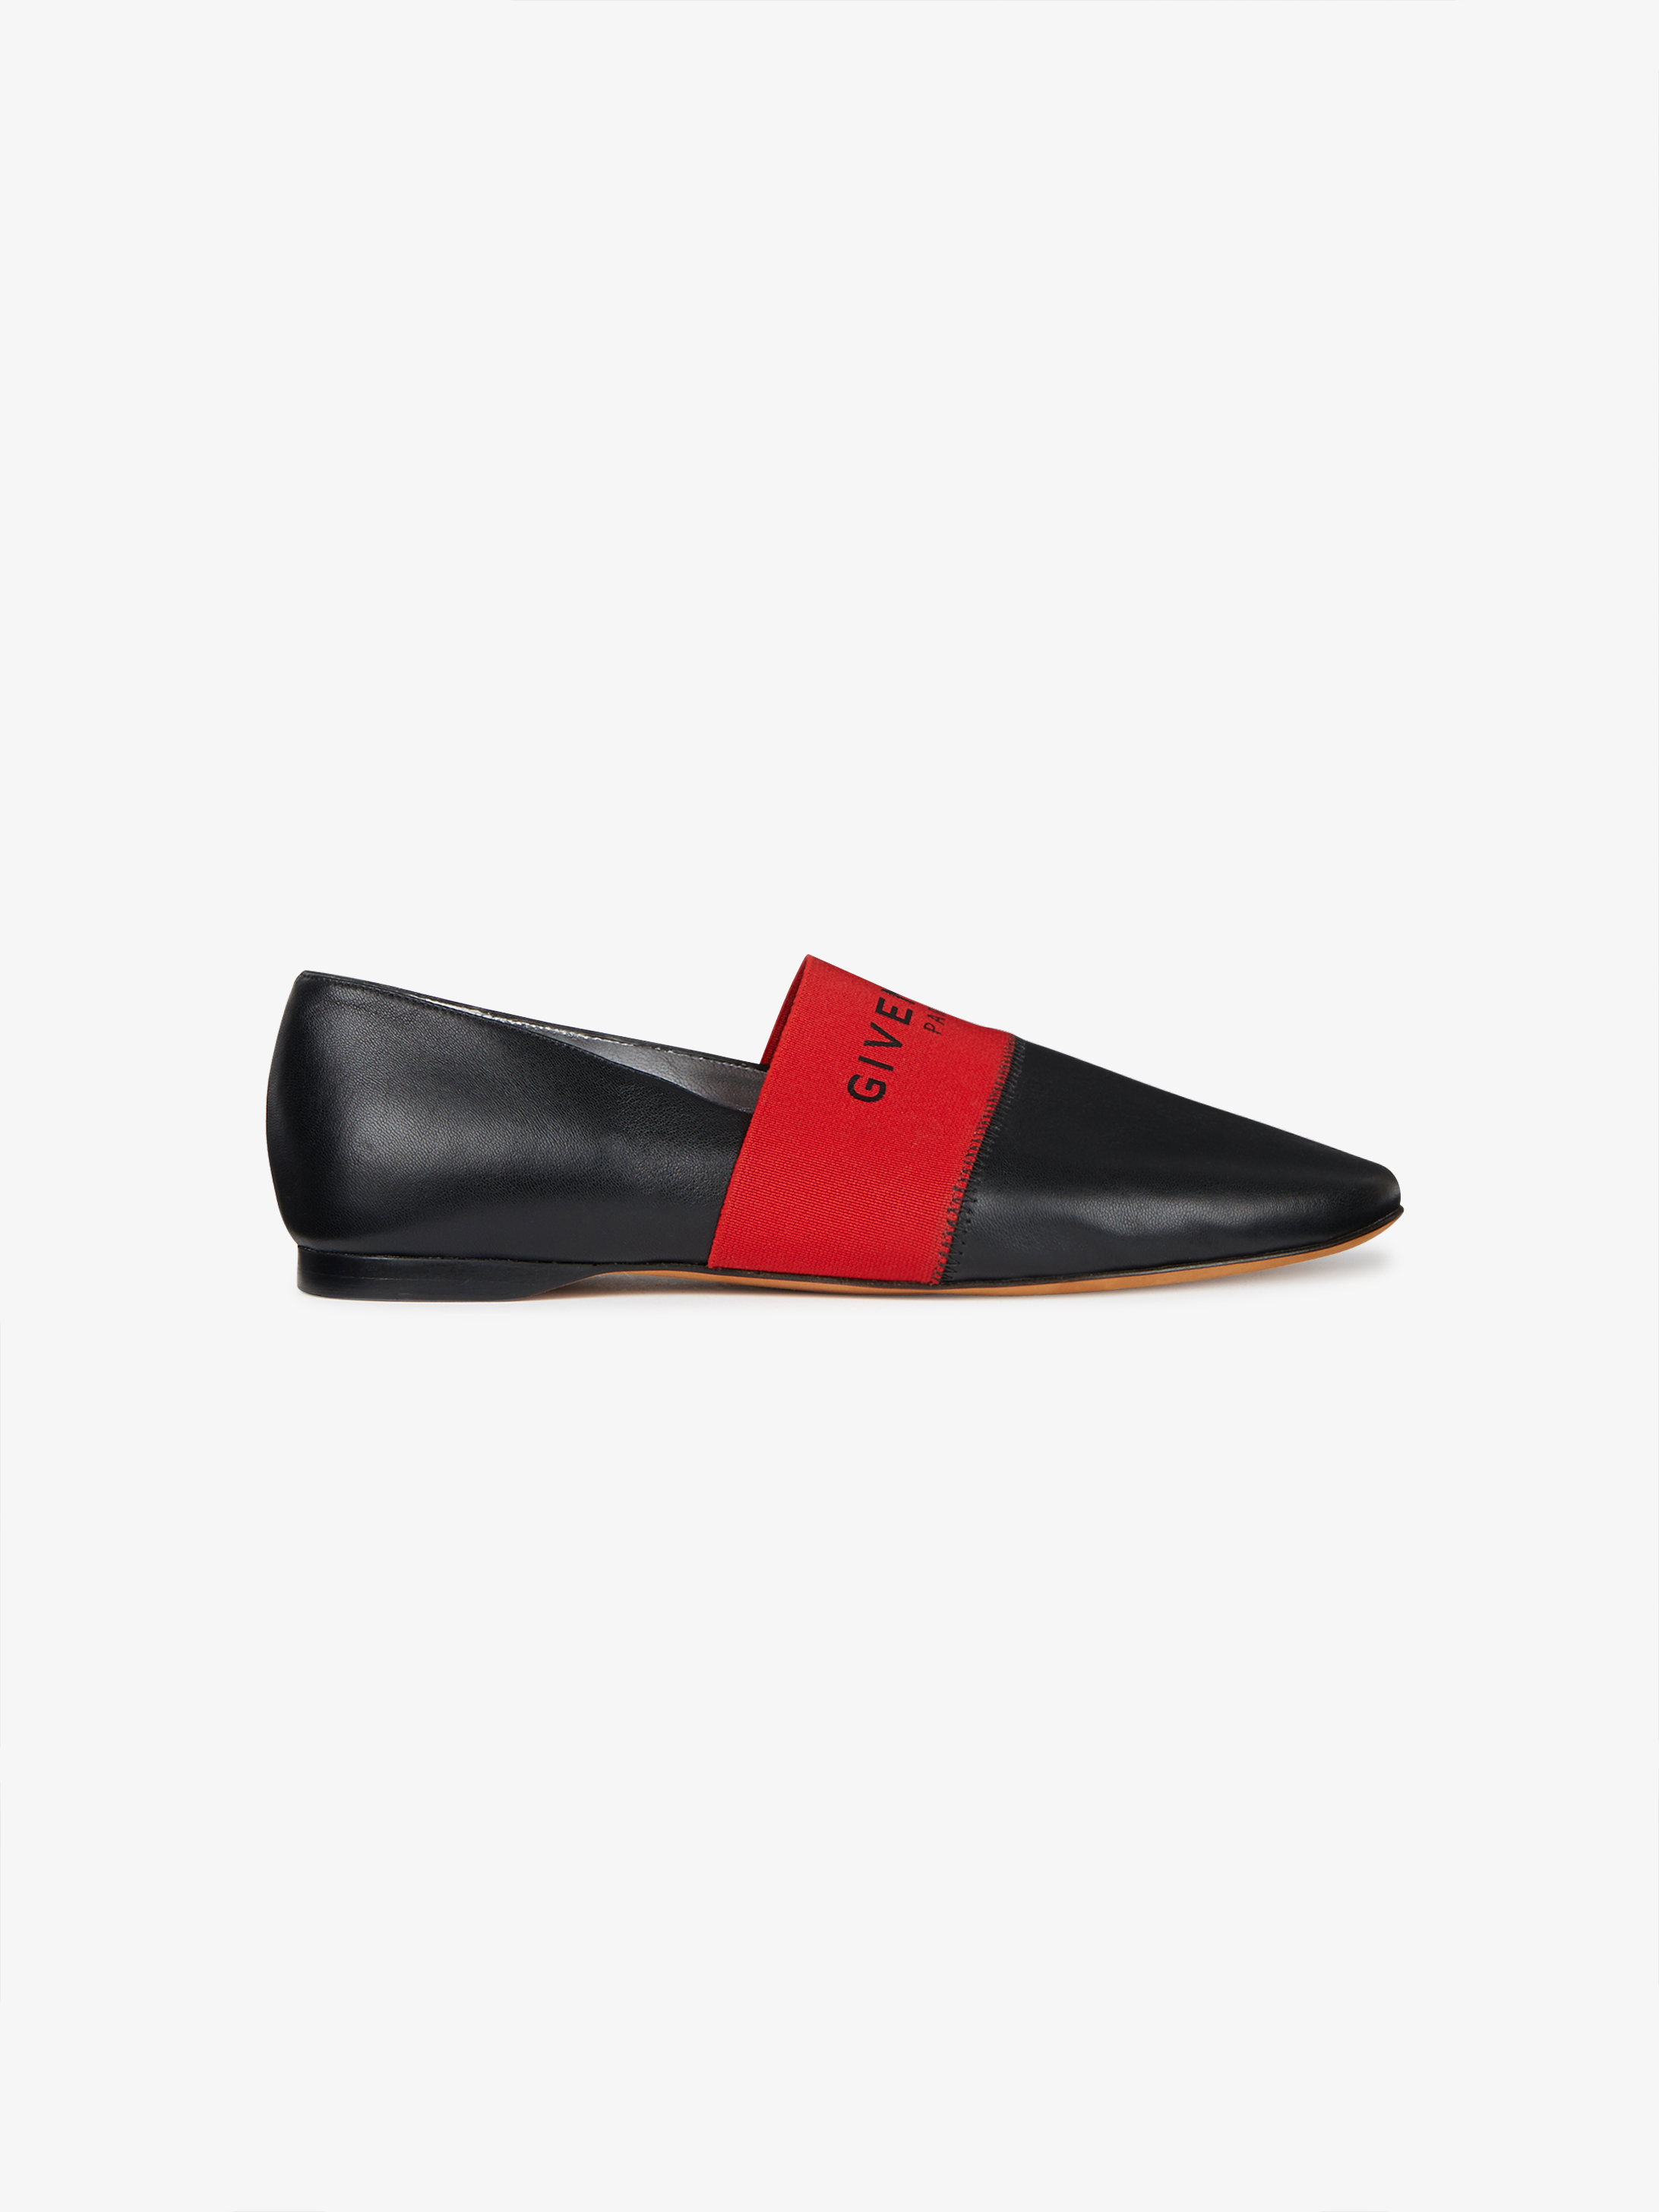 446c2b4b3235 GIVENCHY PARIS leather slippers